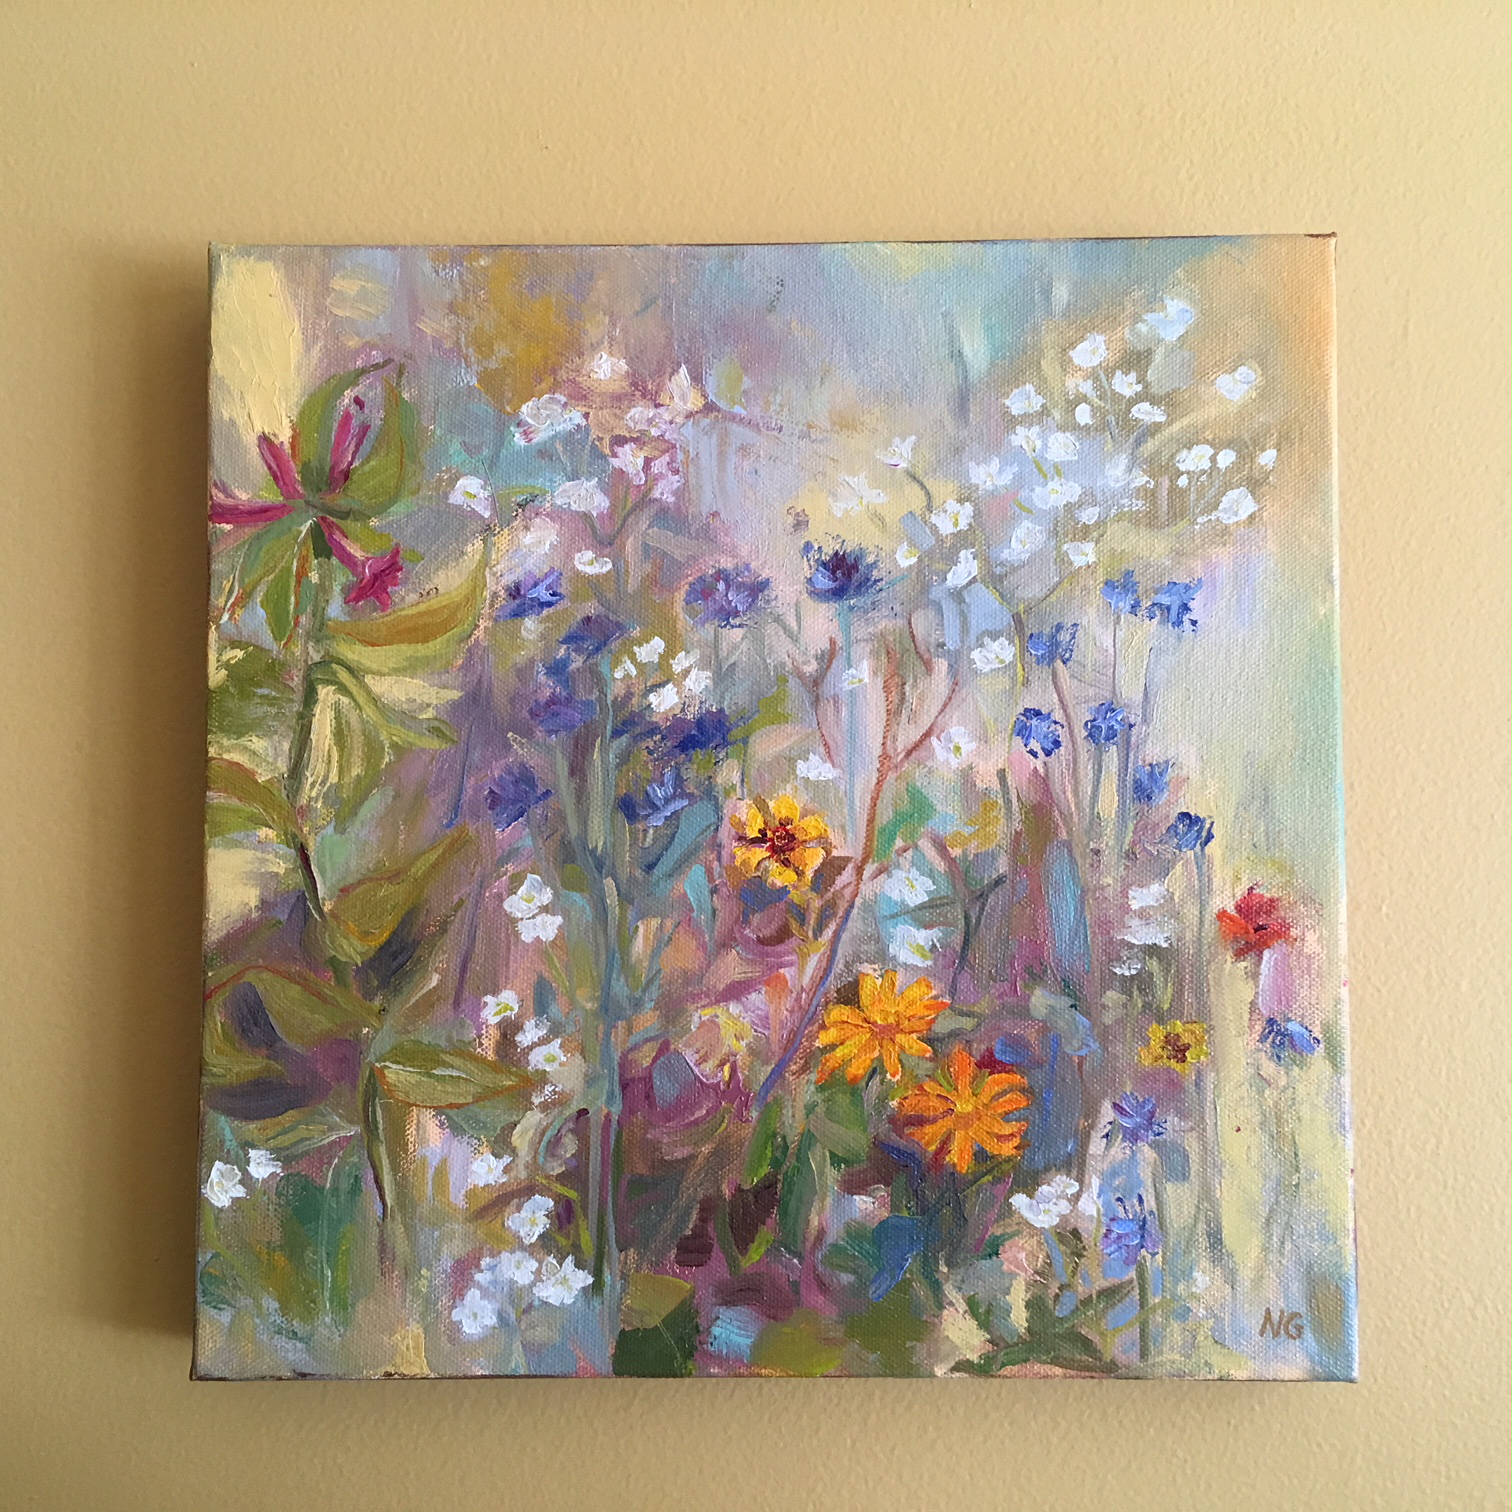 Painting on Canvas without Frame